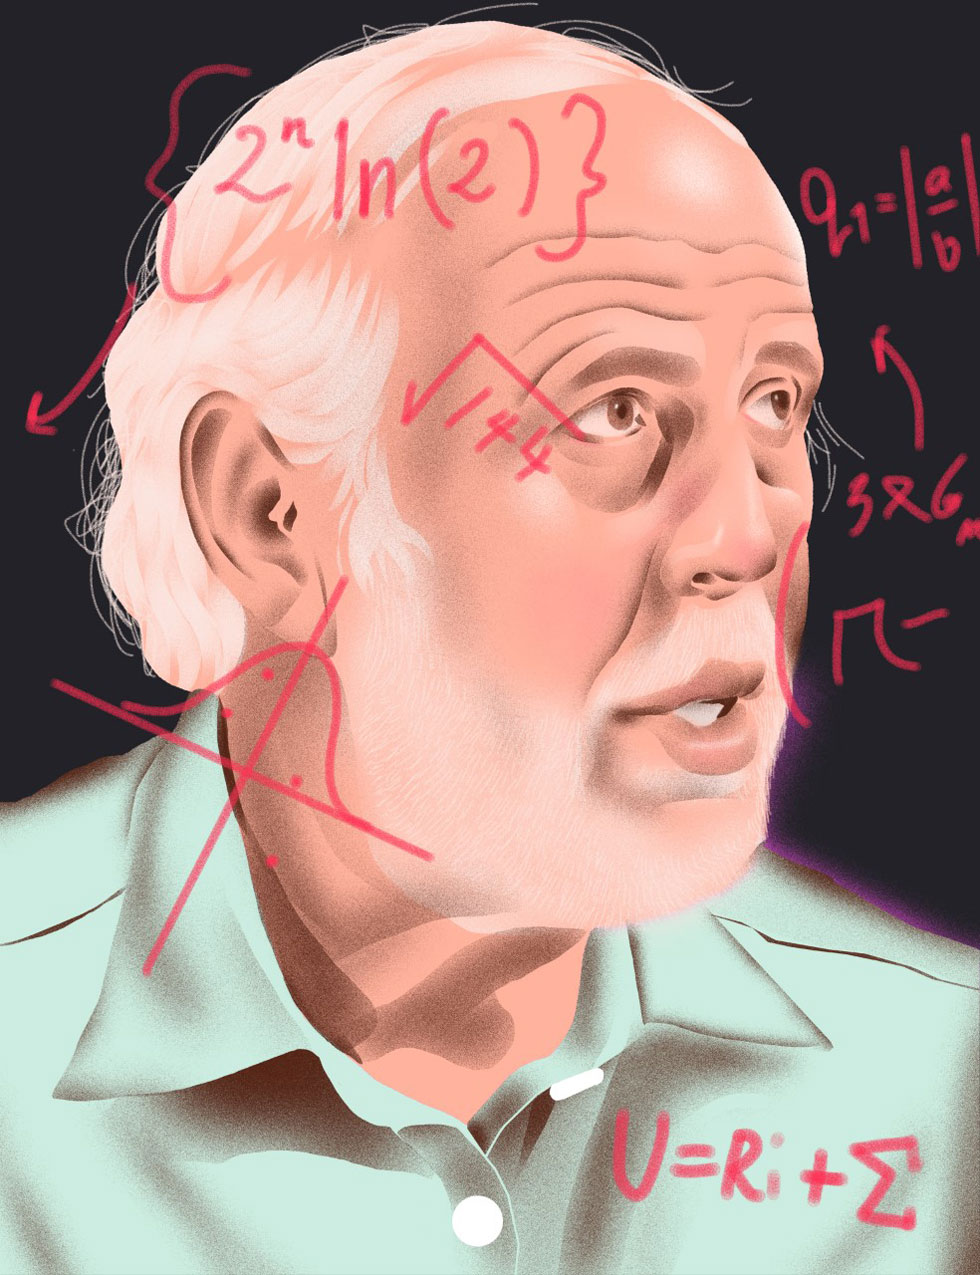 Bitter Lawsuits. Epic Meltdowns. Vicious Arguments. Jim Simons' Renaissance Made Him Billions – But It Came at a Price.